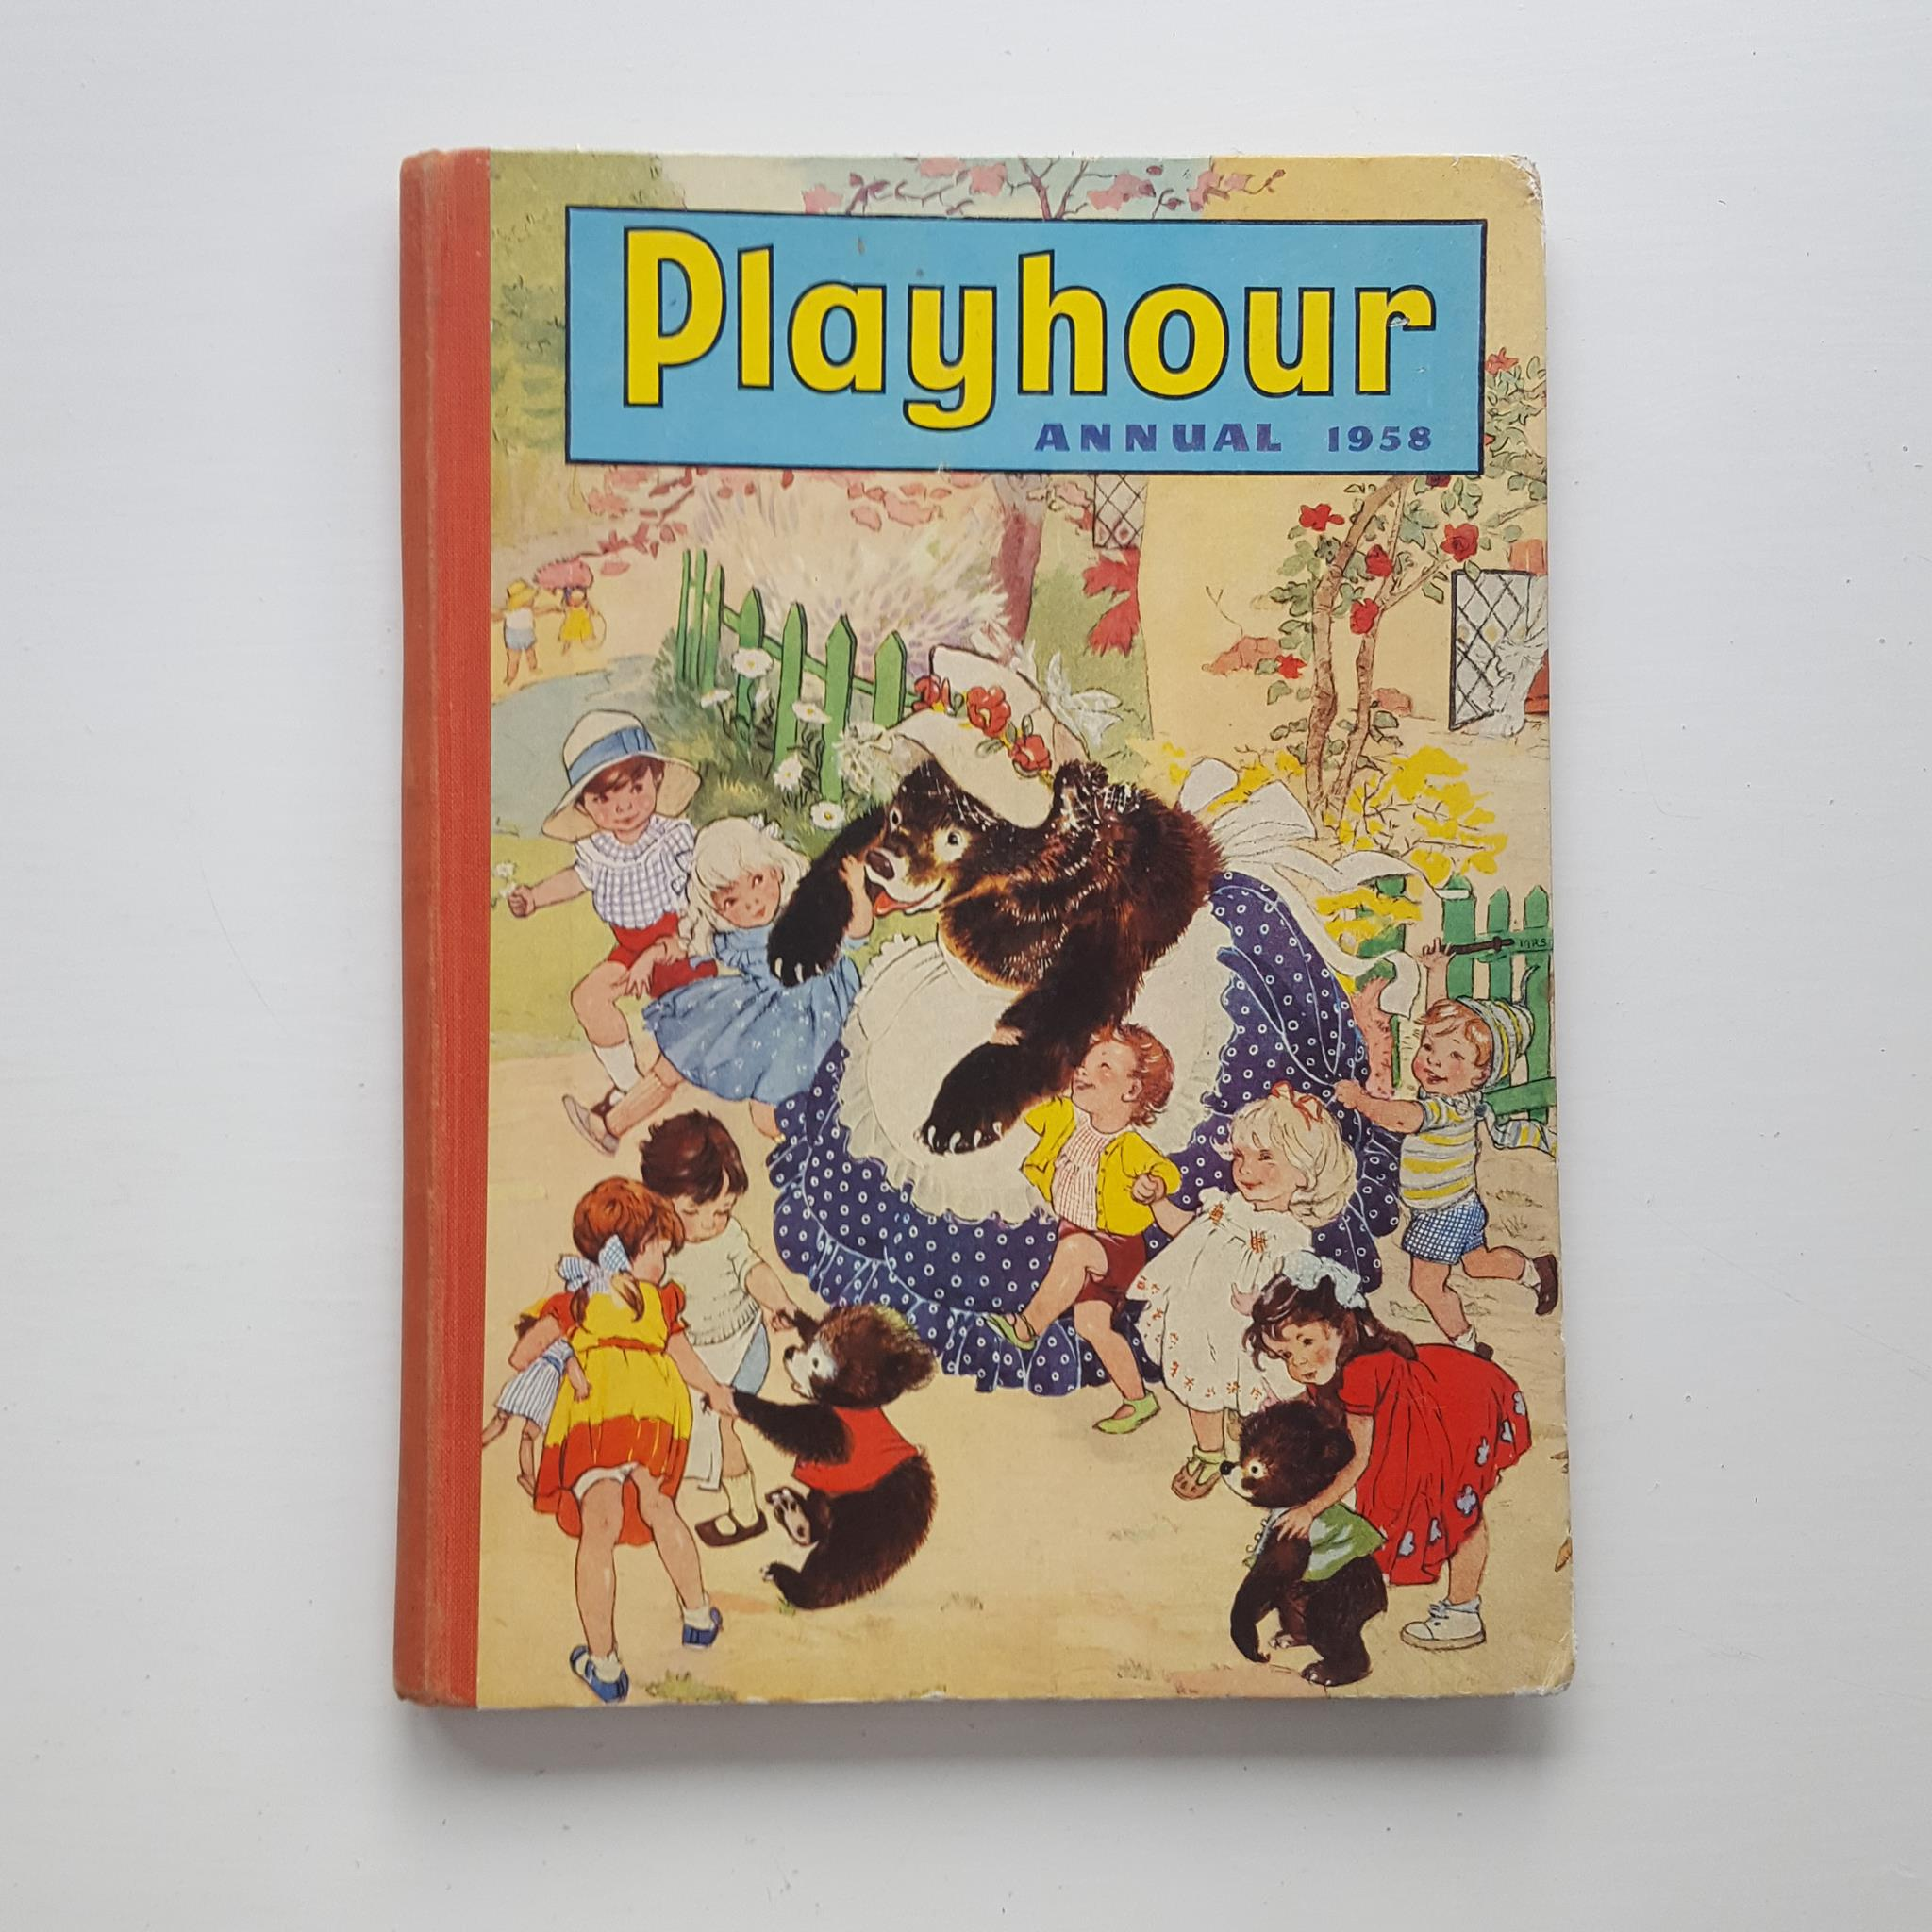 Playhour Annual 1958 by Uncredited